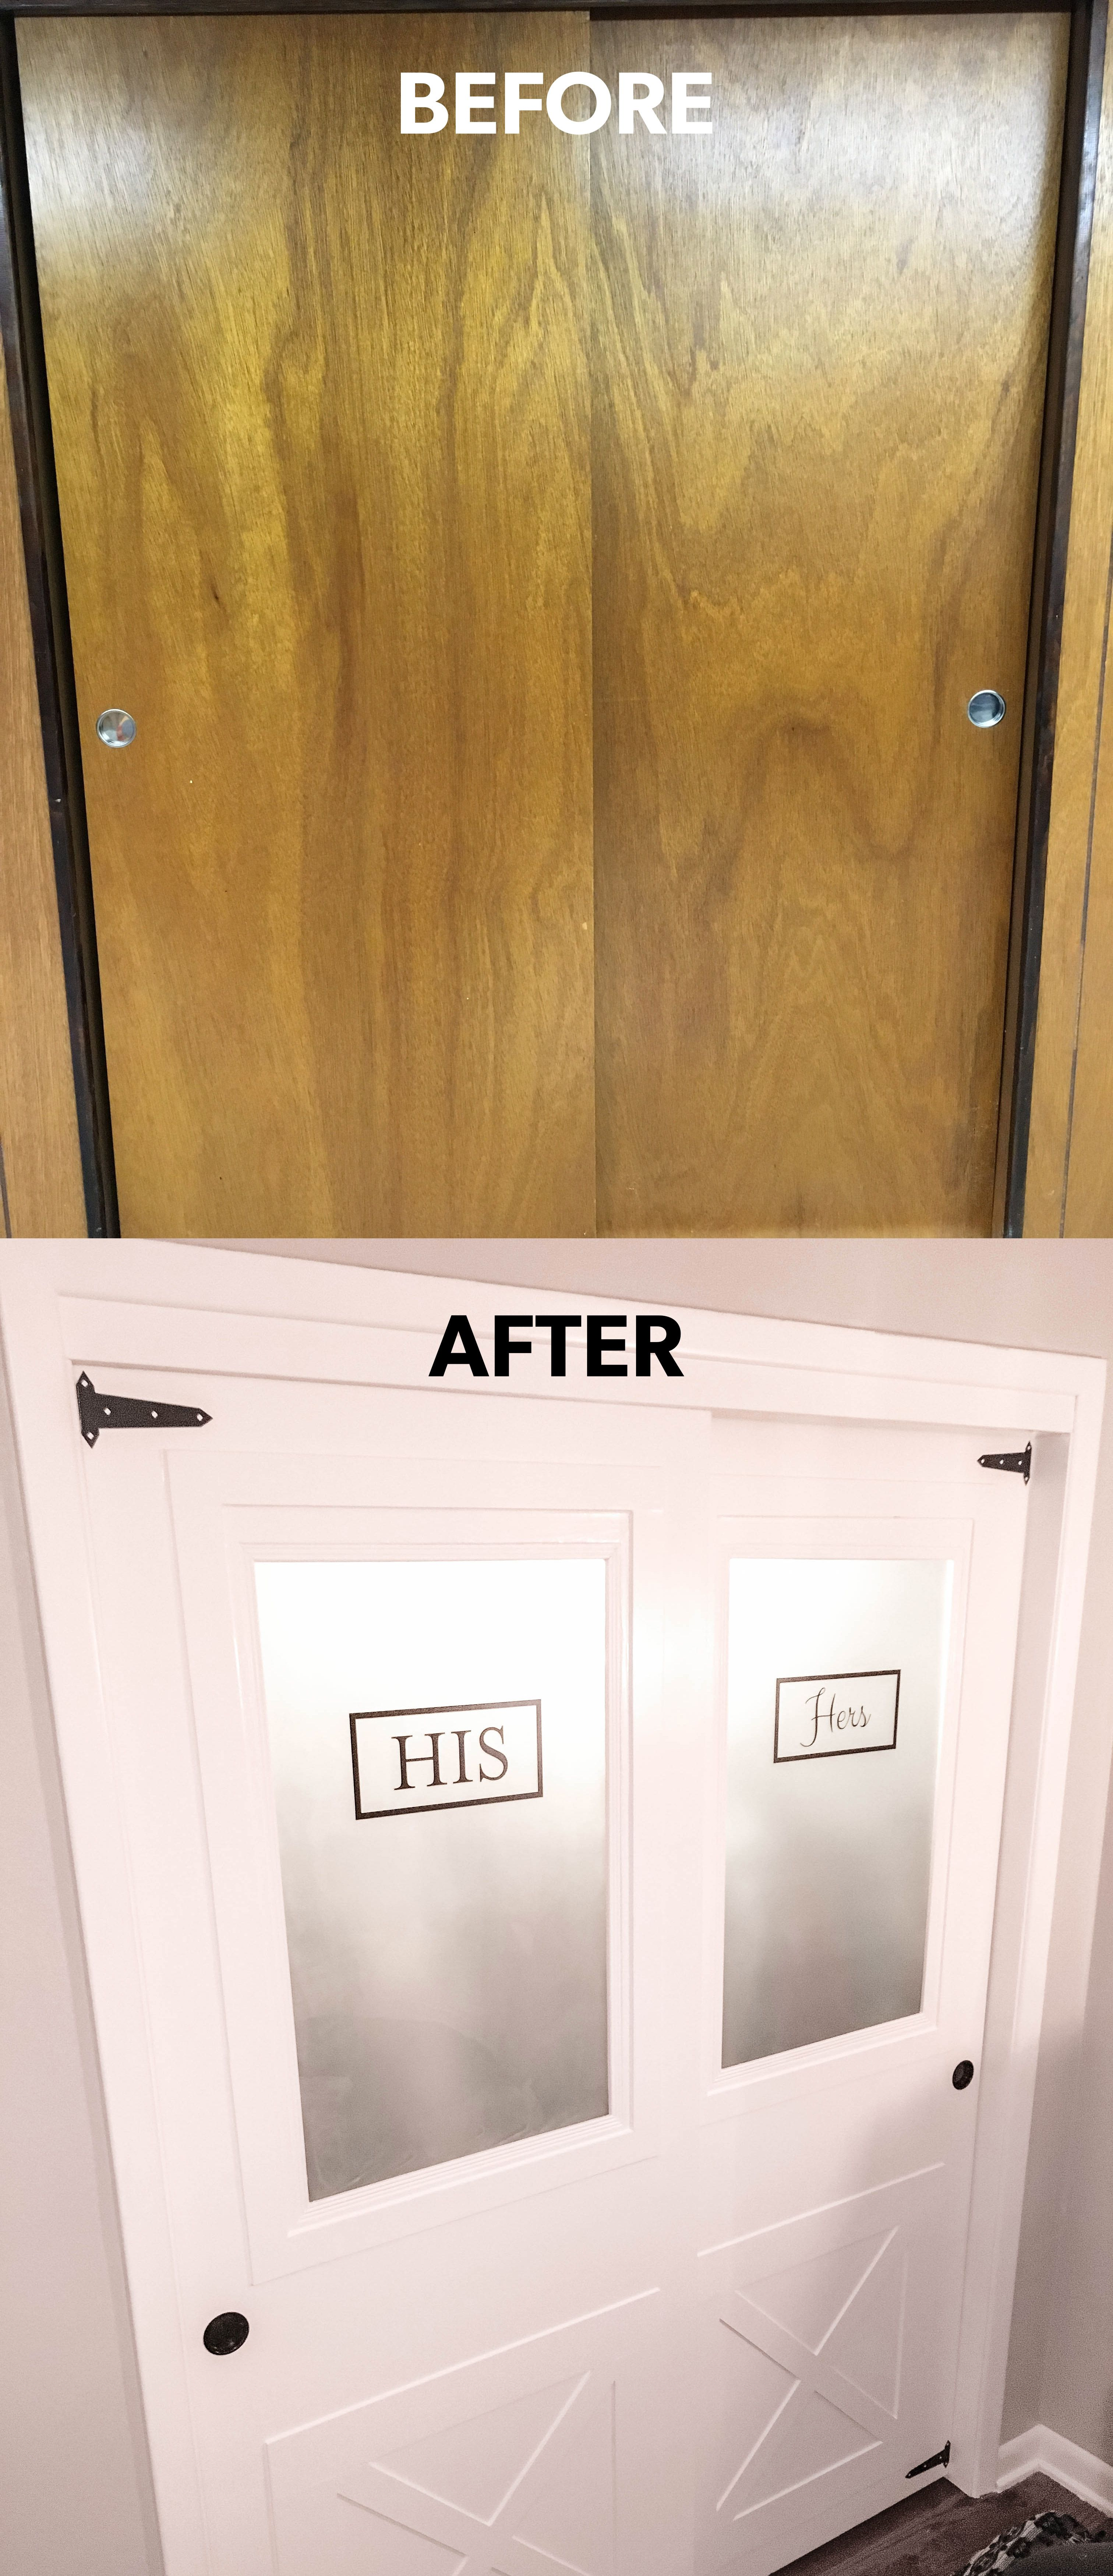 Sliding Farmhouse Hollow Core Closet Doors With Frosted Glass For The Home Diy Interior